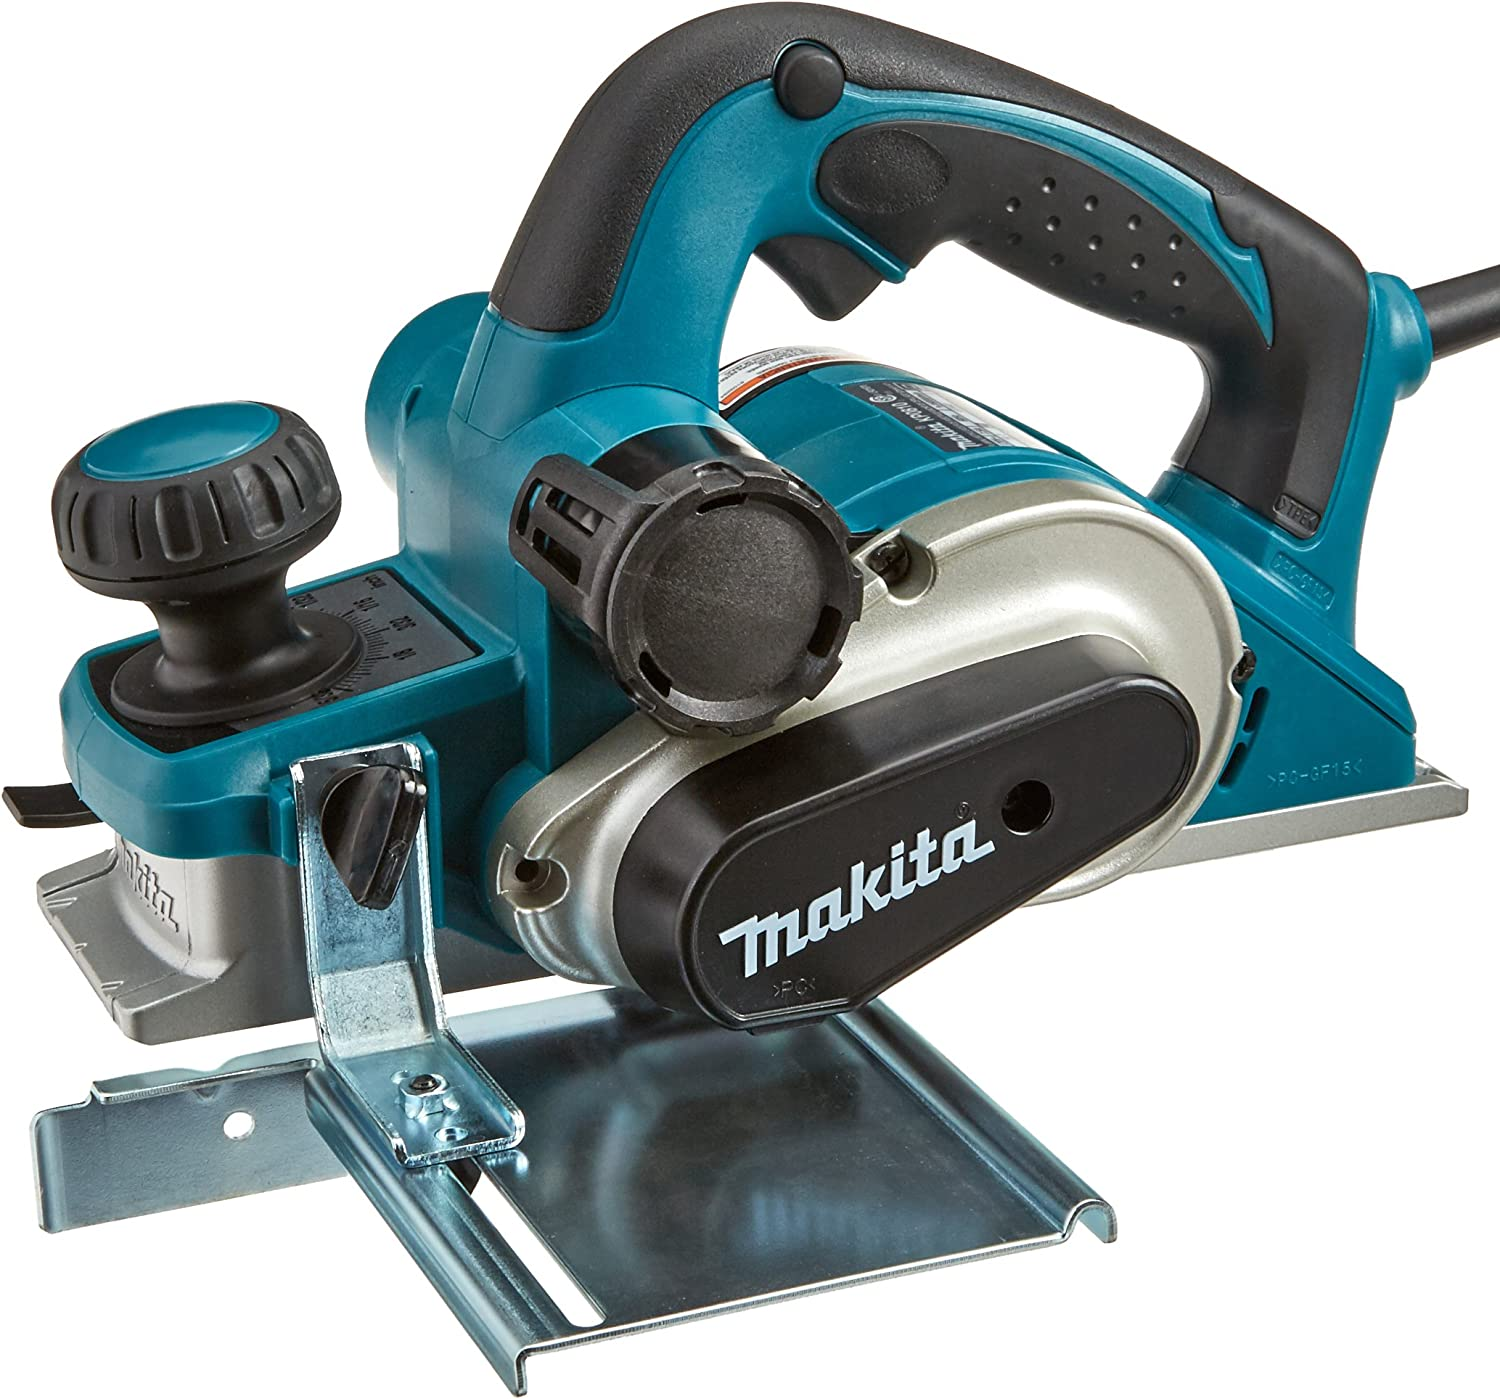 Makita KP0810 Electric Hand Planers product image 2